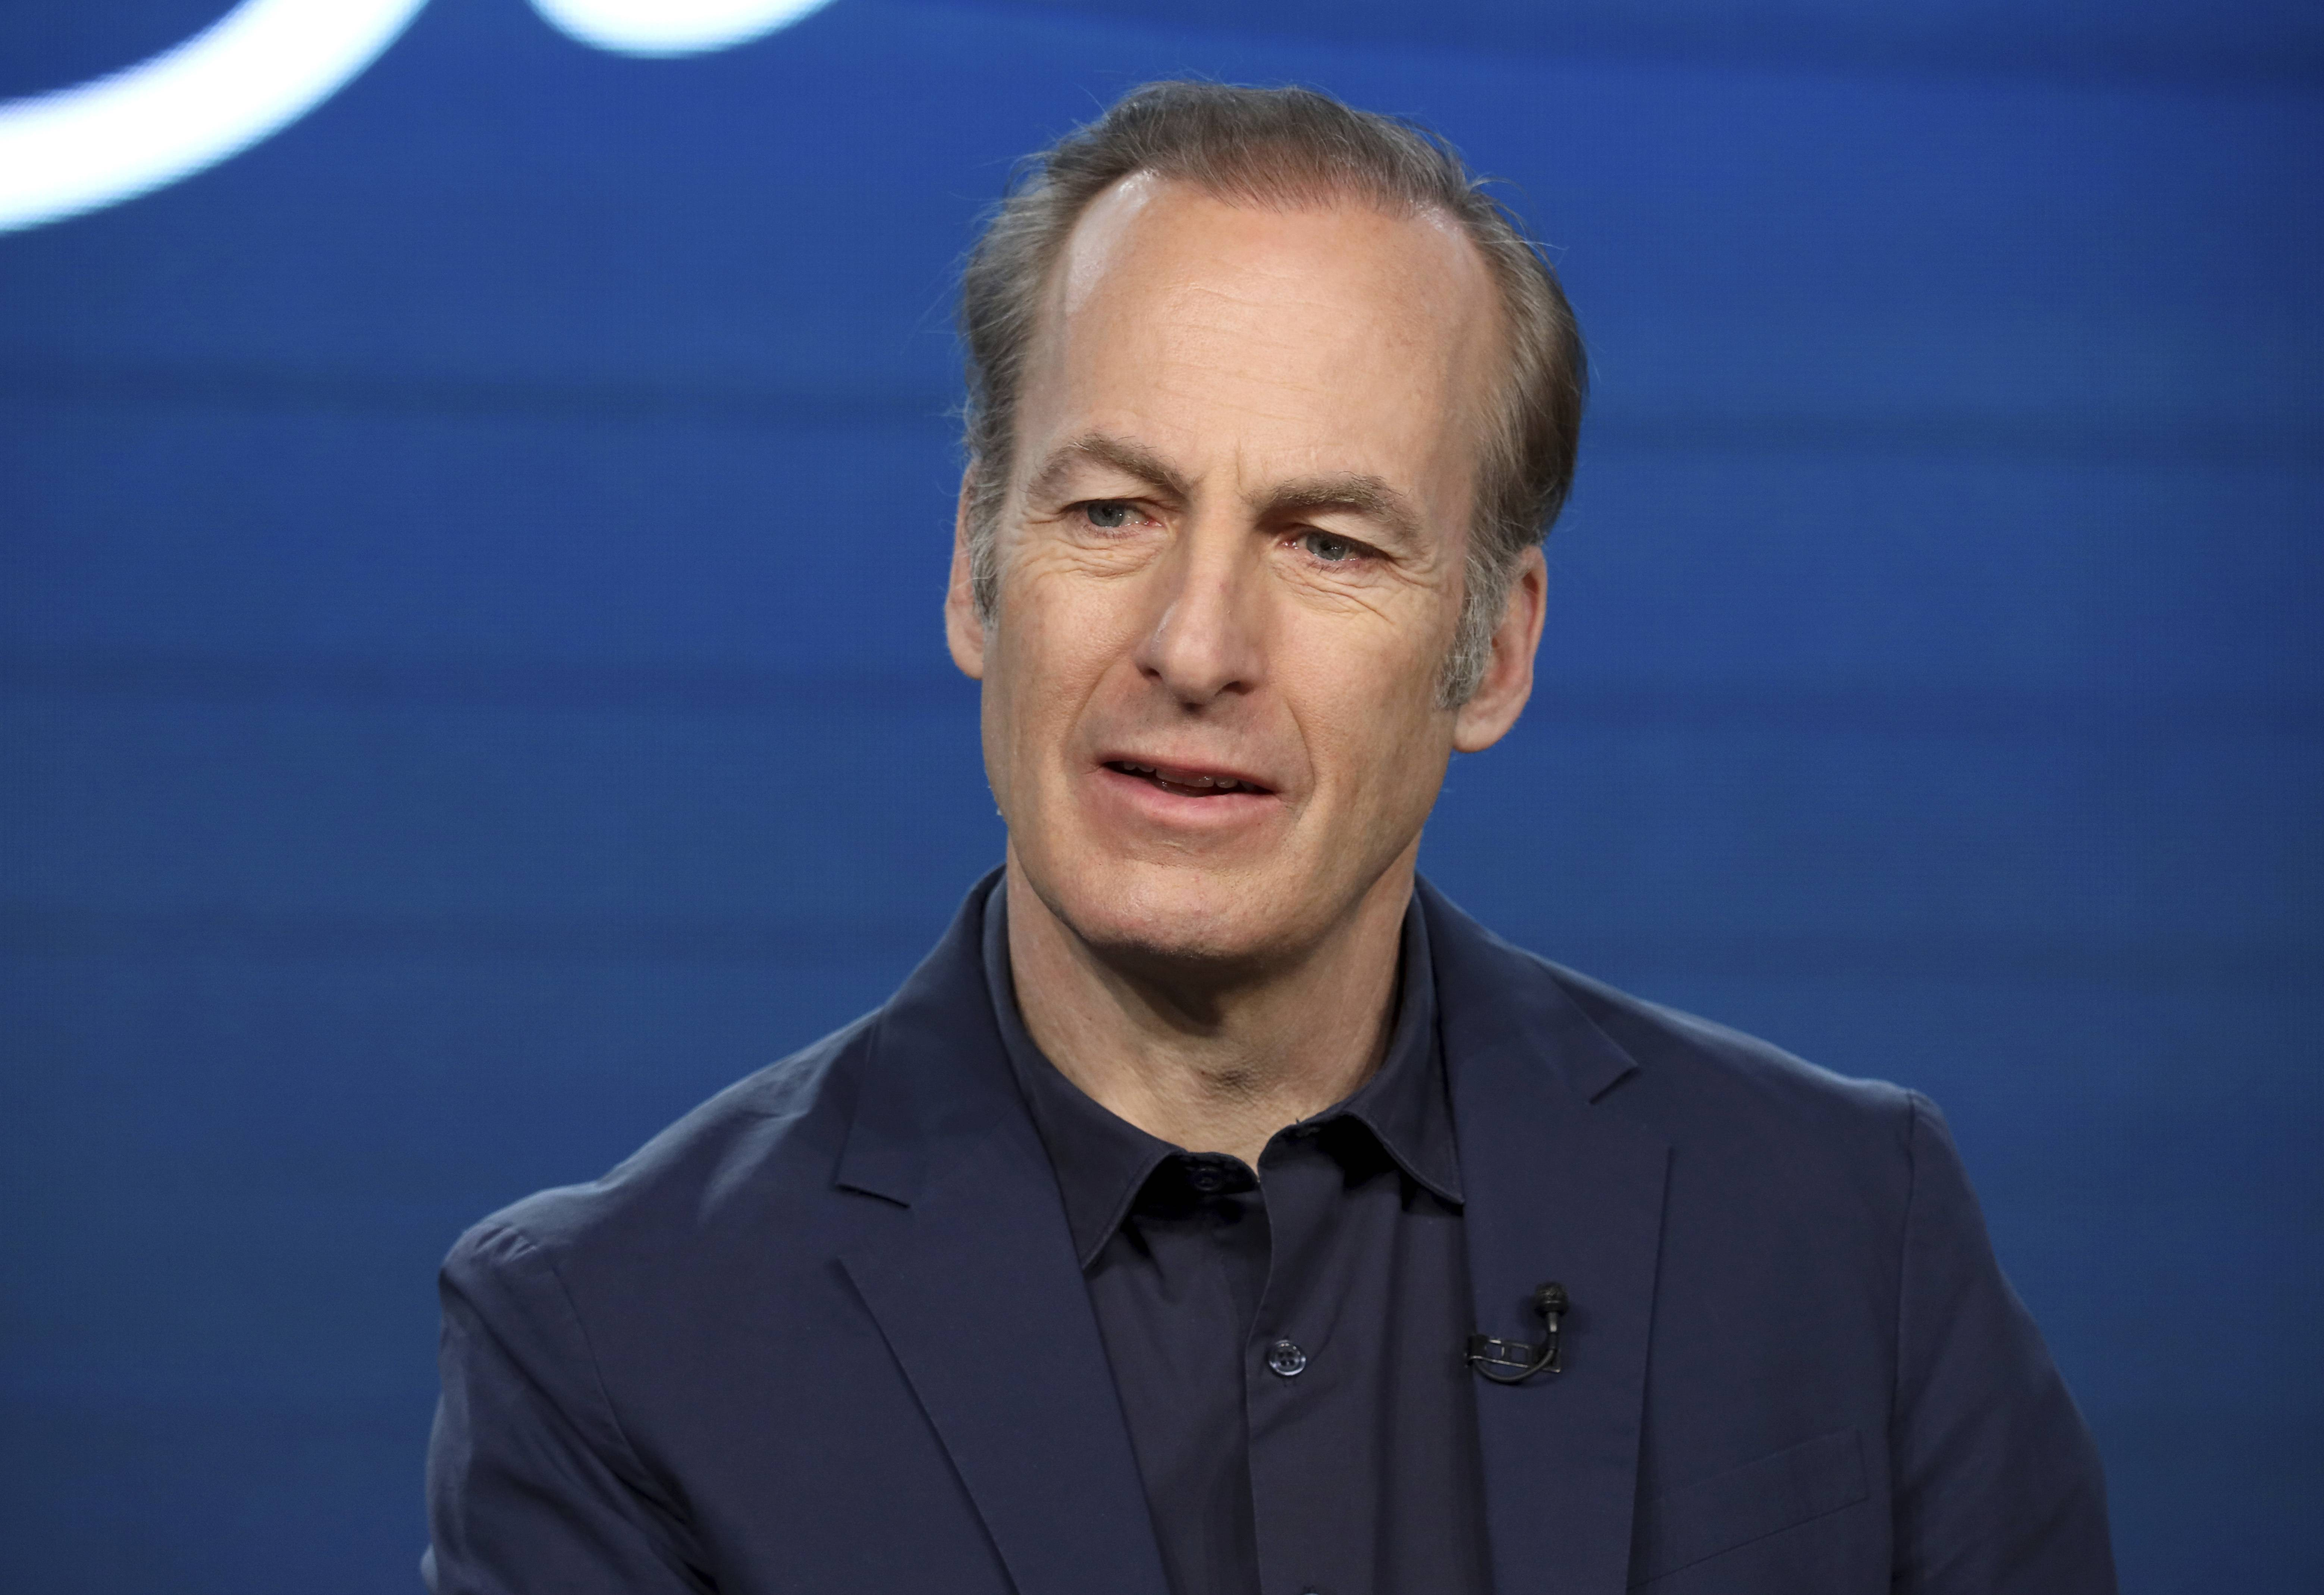 Naperville's Bob Odenkirk tweets that he had 'small heart attack' with no surgery needed